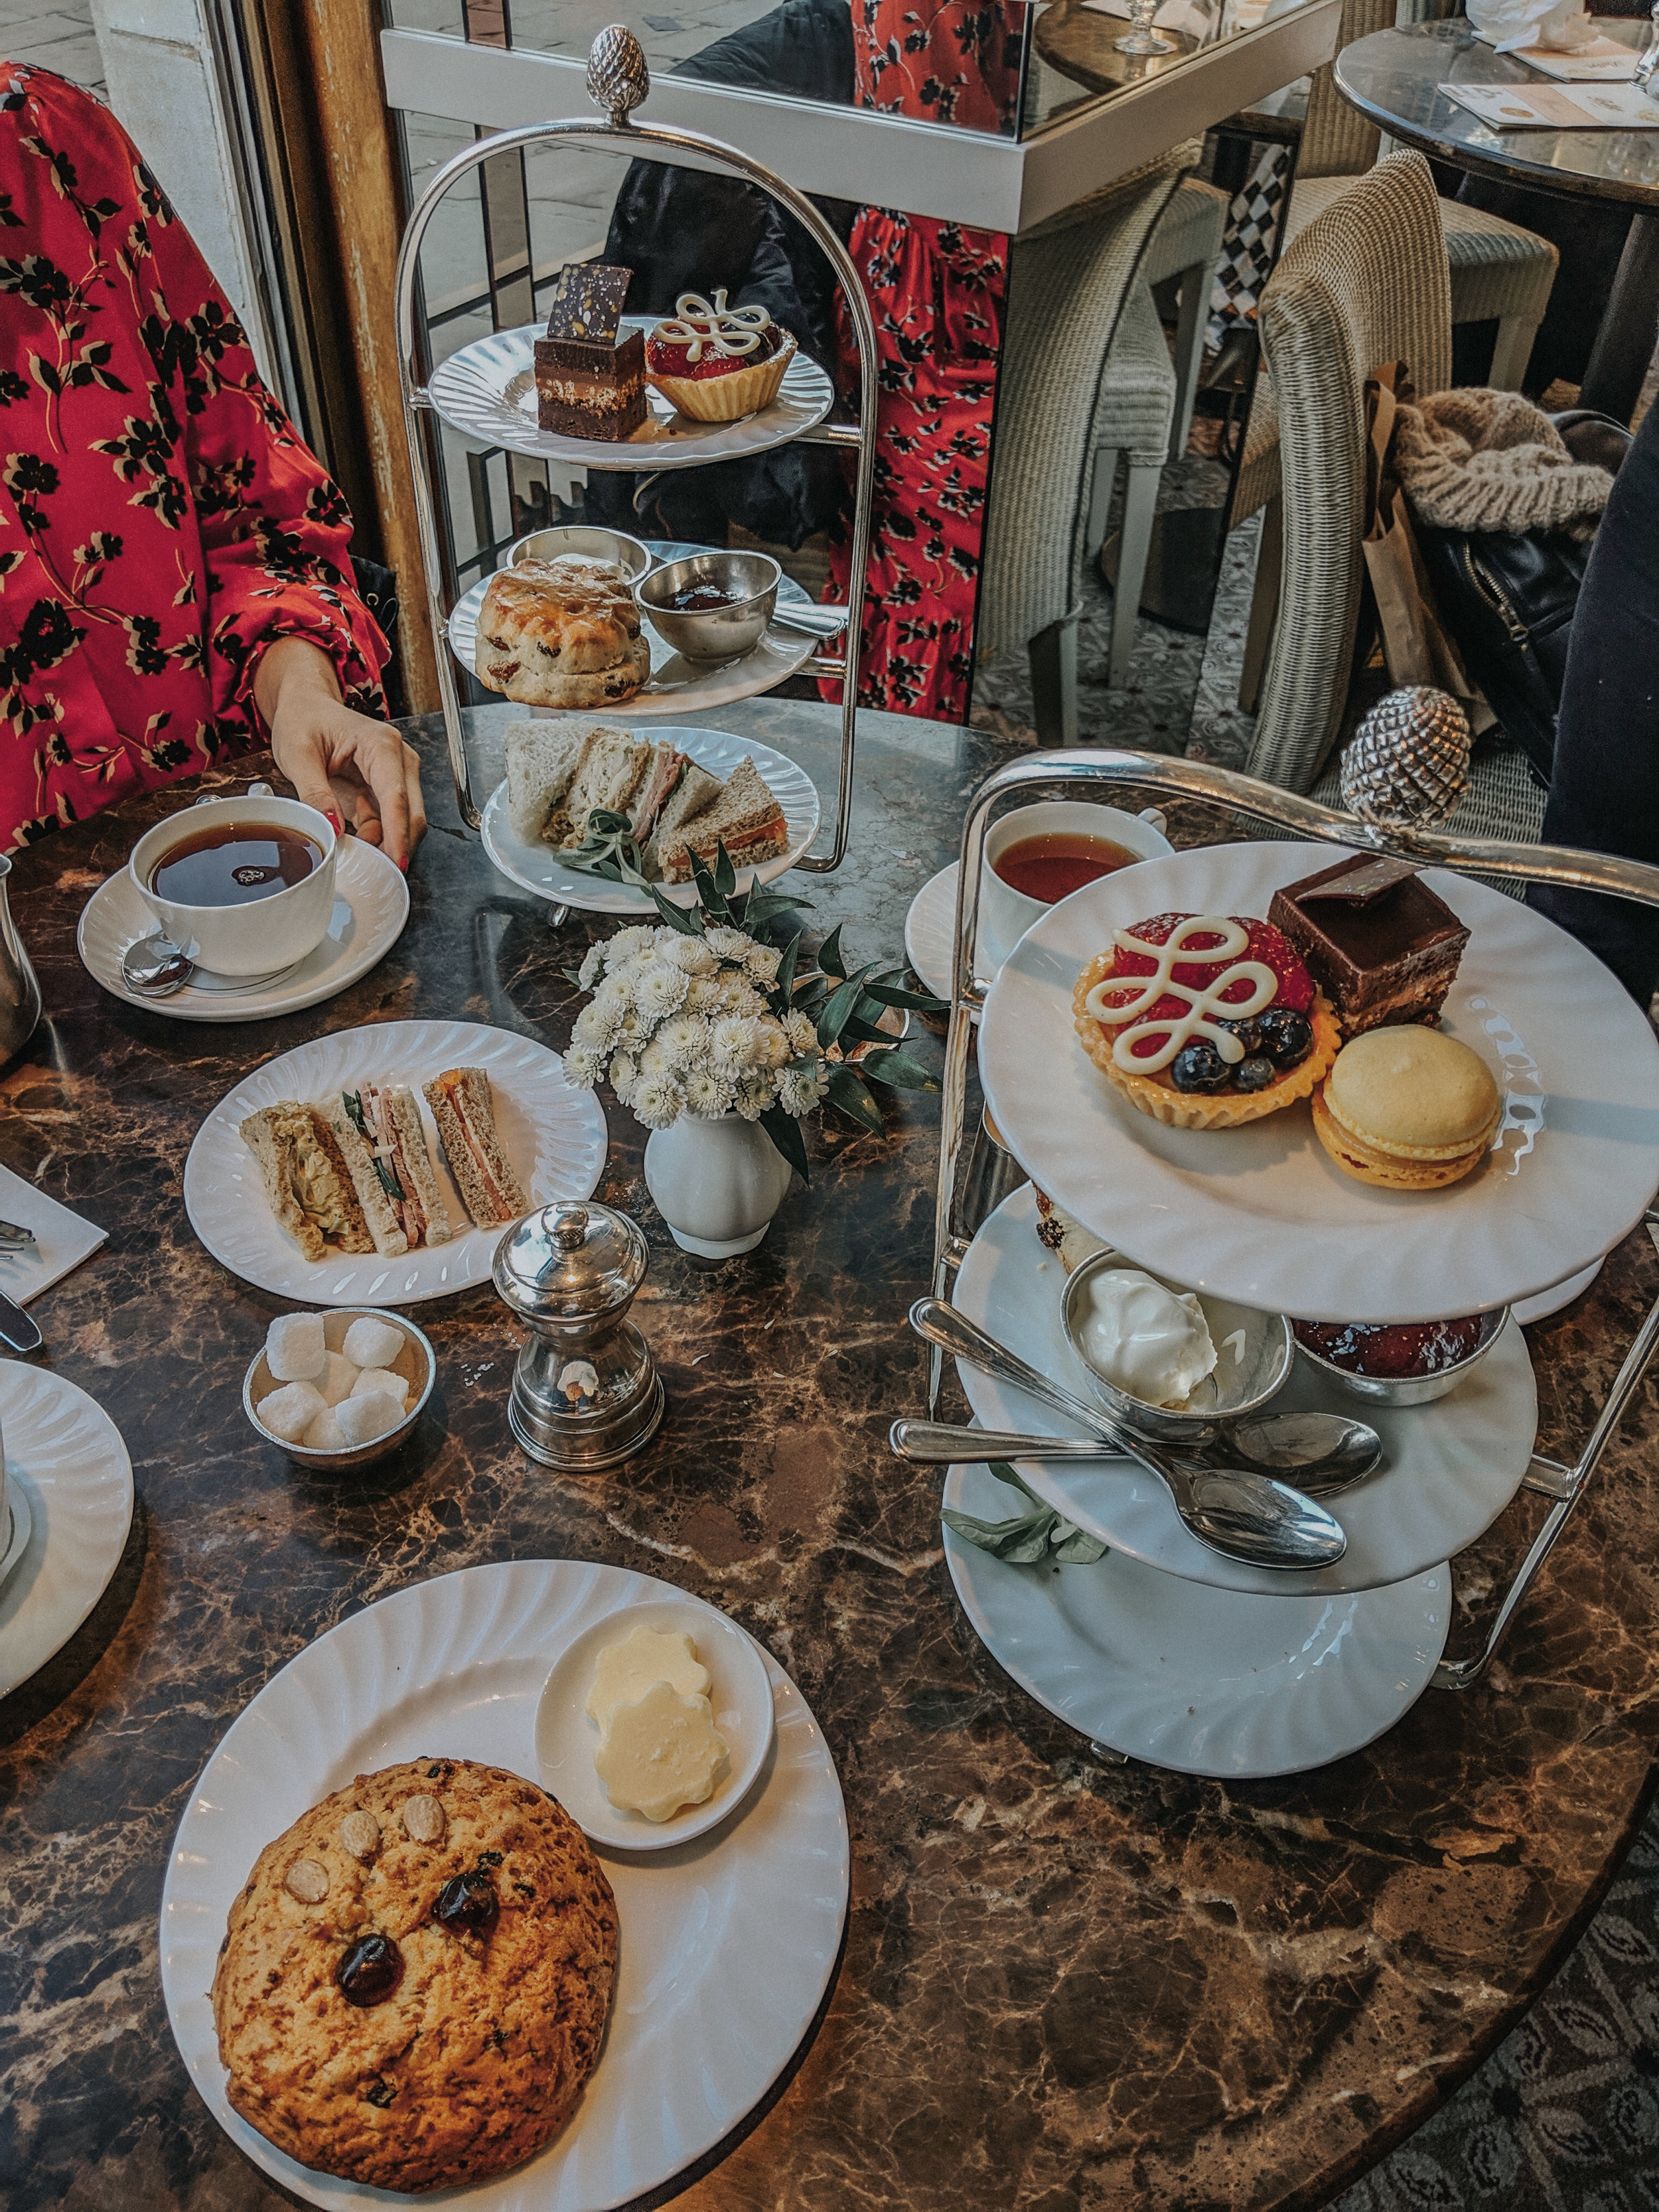 Classic afternoon tea. That's the fat rascal in the front.